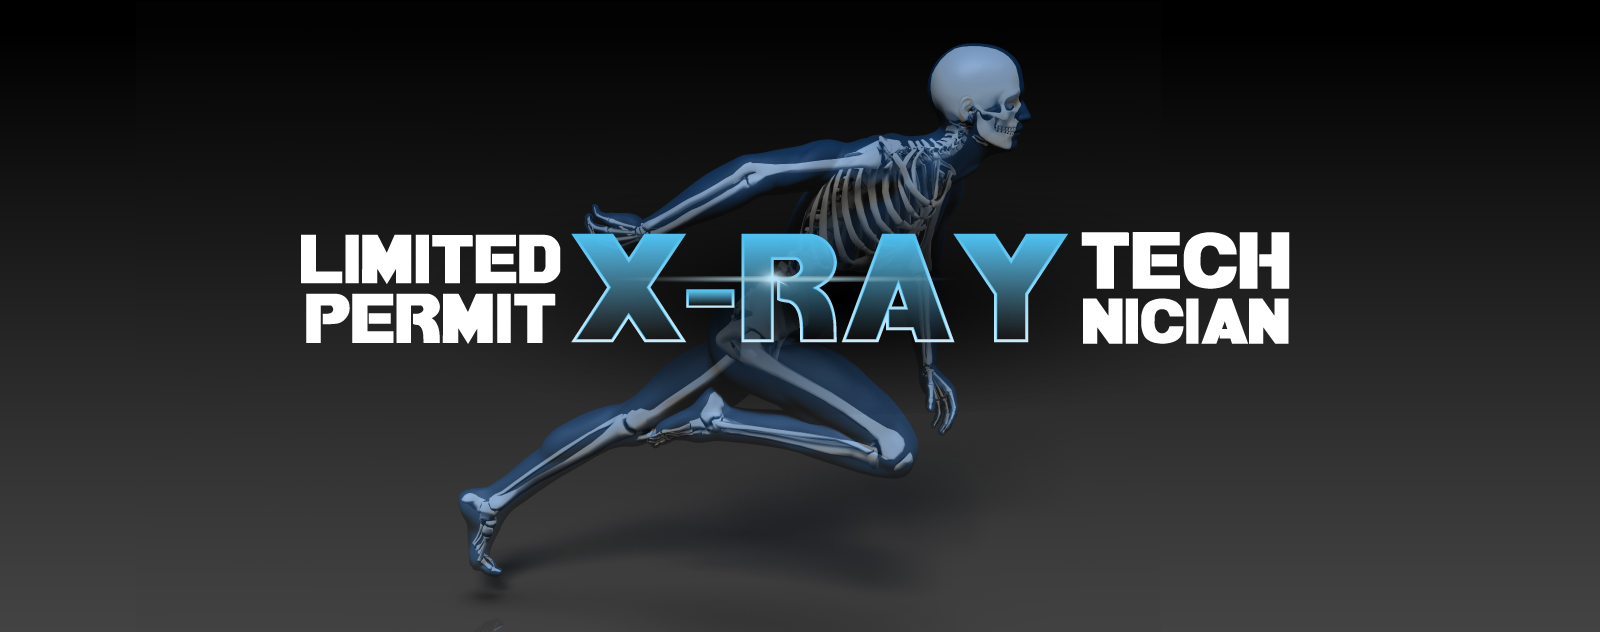 Limited Permit X Ray Technician Career Care Institute Medical